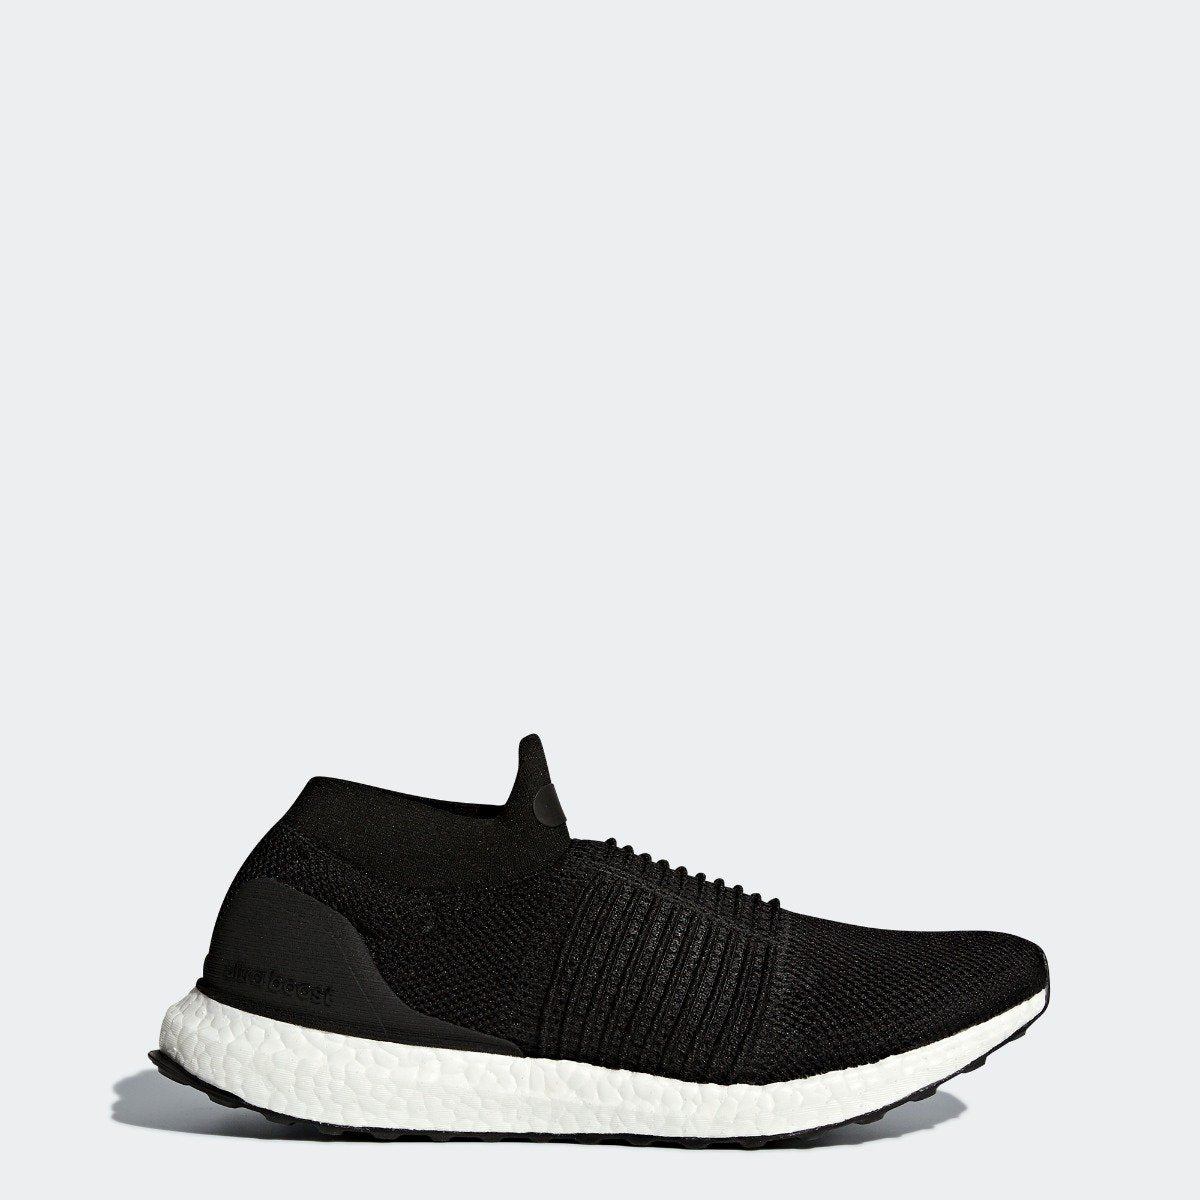 37629c4cf52 Men s adidas Running Ultraboost Laceless Shoes Core Black